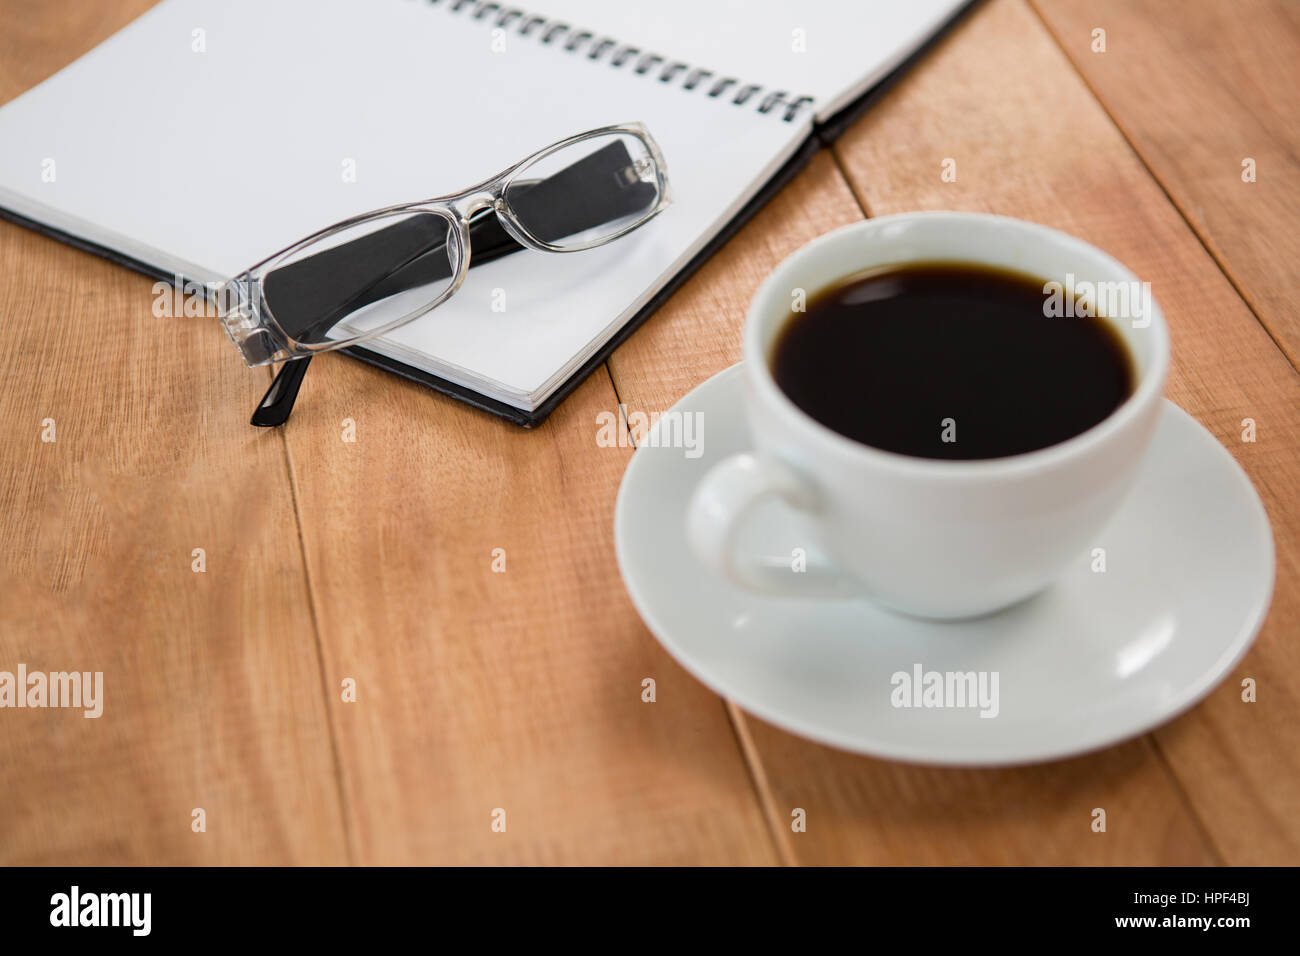 Open diary with spectacle and black coffee on table - Stock Image